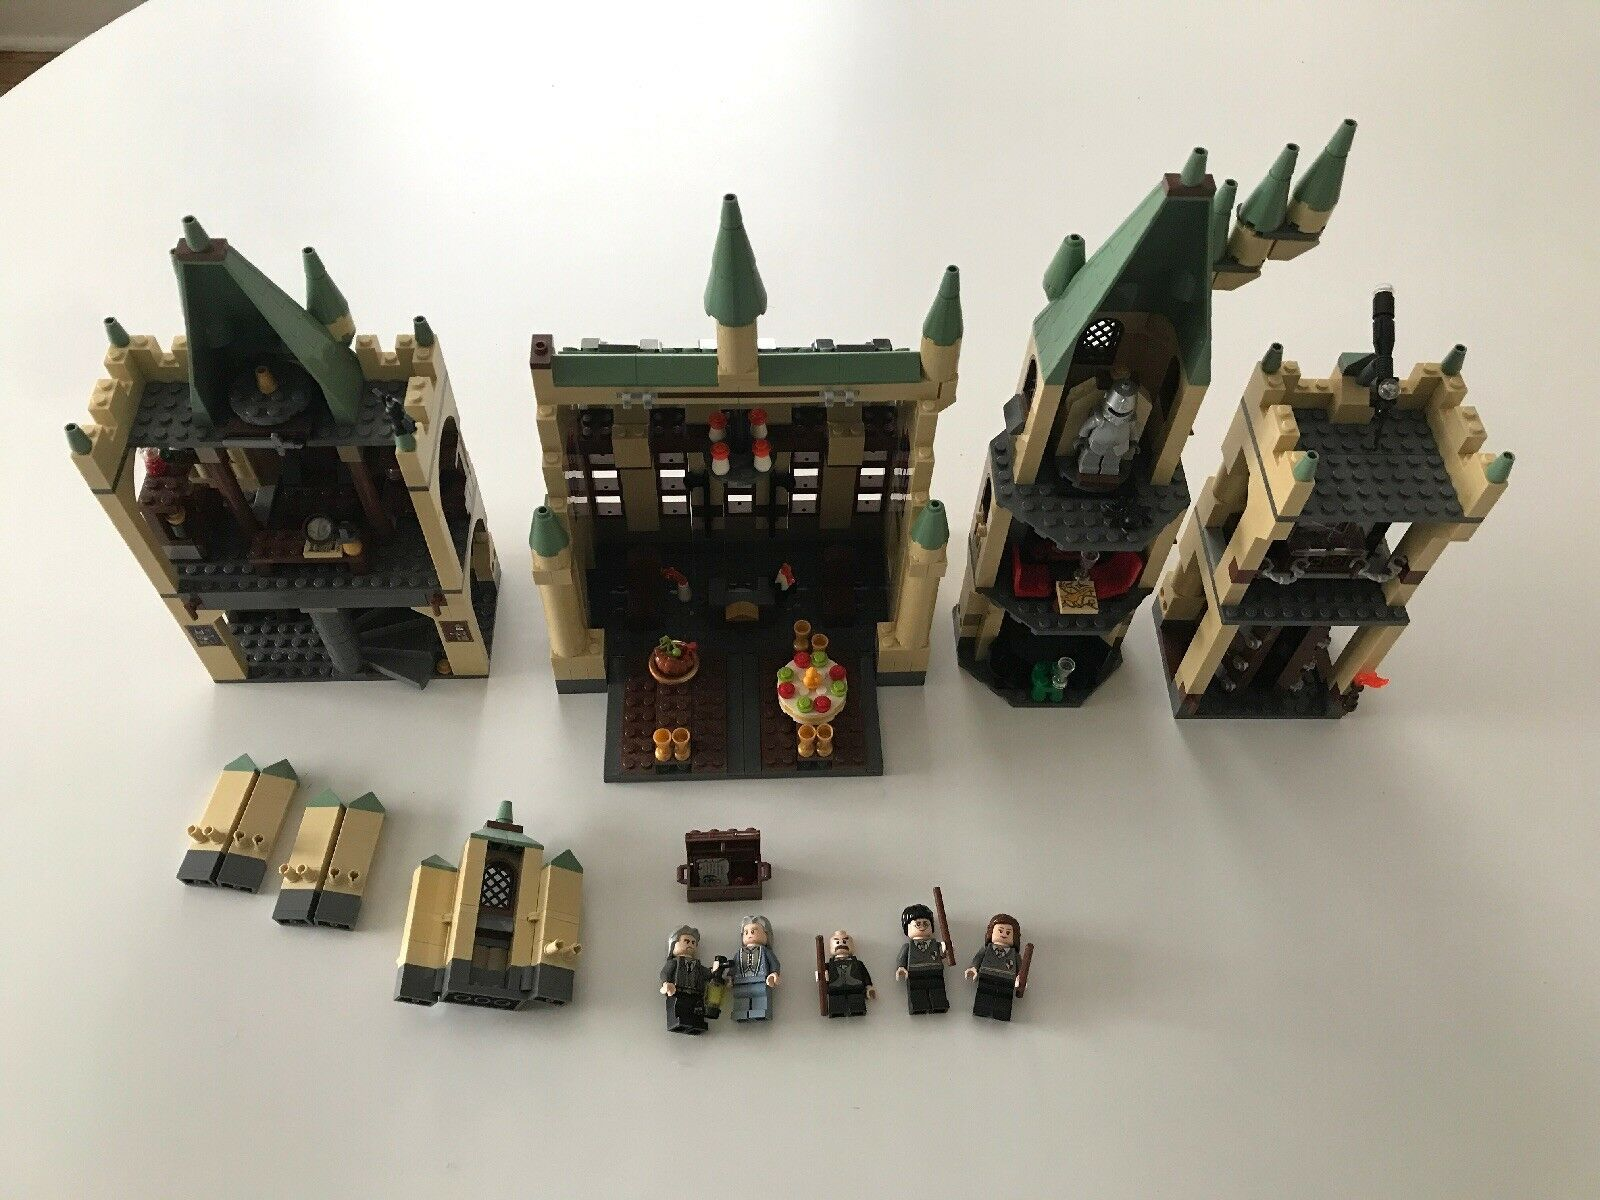 LEGO set 4842 Harry Potter Hogwarts Castle INCOMPLETE